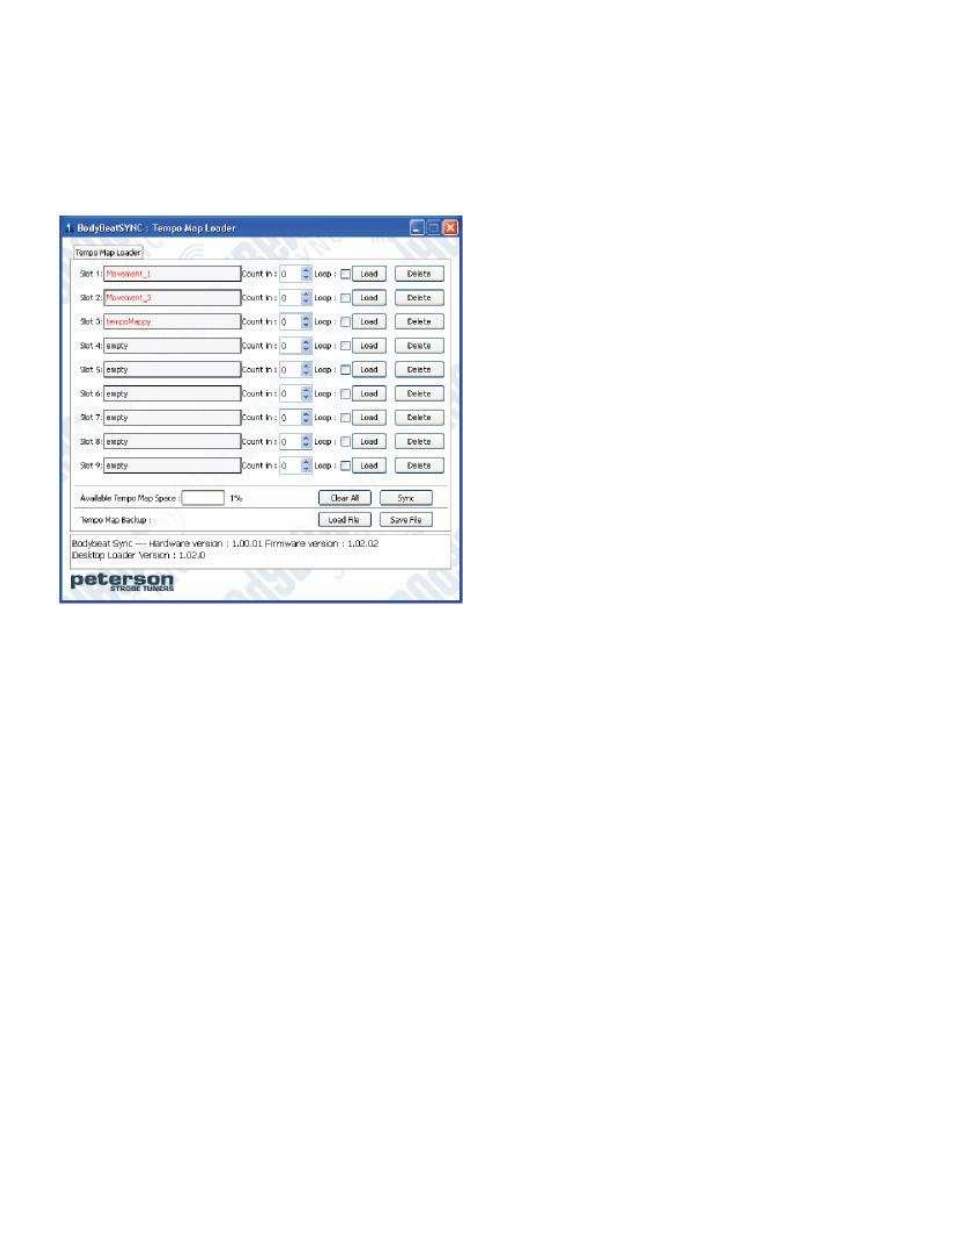 Peterson stroboplus hd owners manual user manual | page 6 / 22.